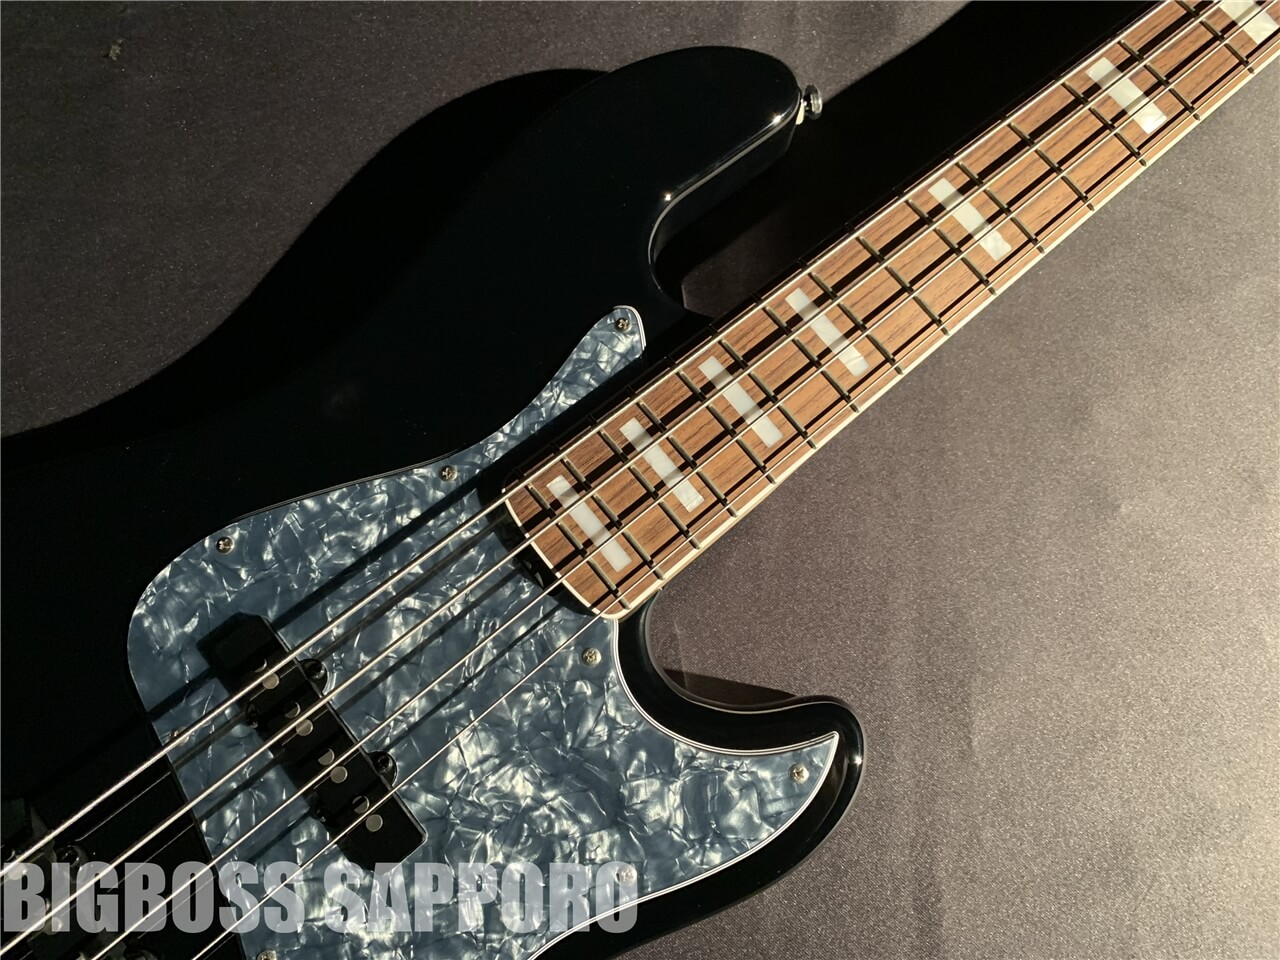 【即納可能】LAKLAND(レイクランド) Darryl Jones Signature Bass (Black) 札幌店